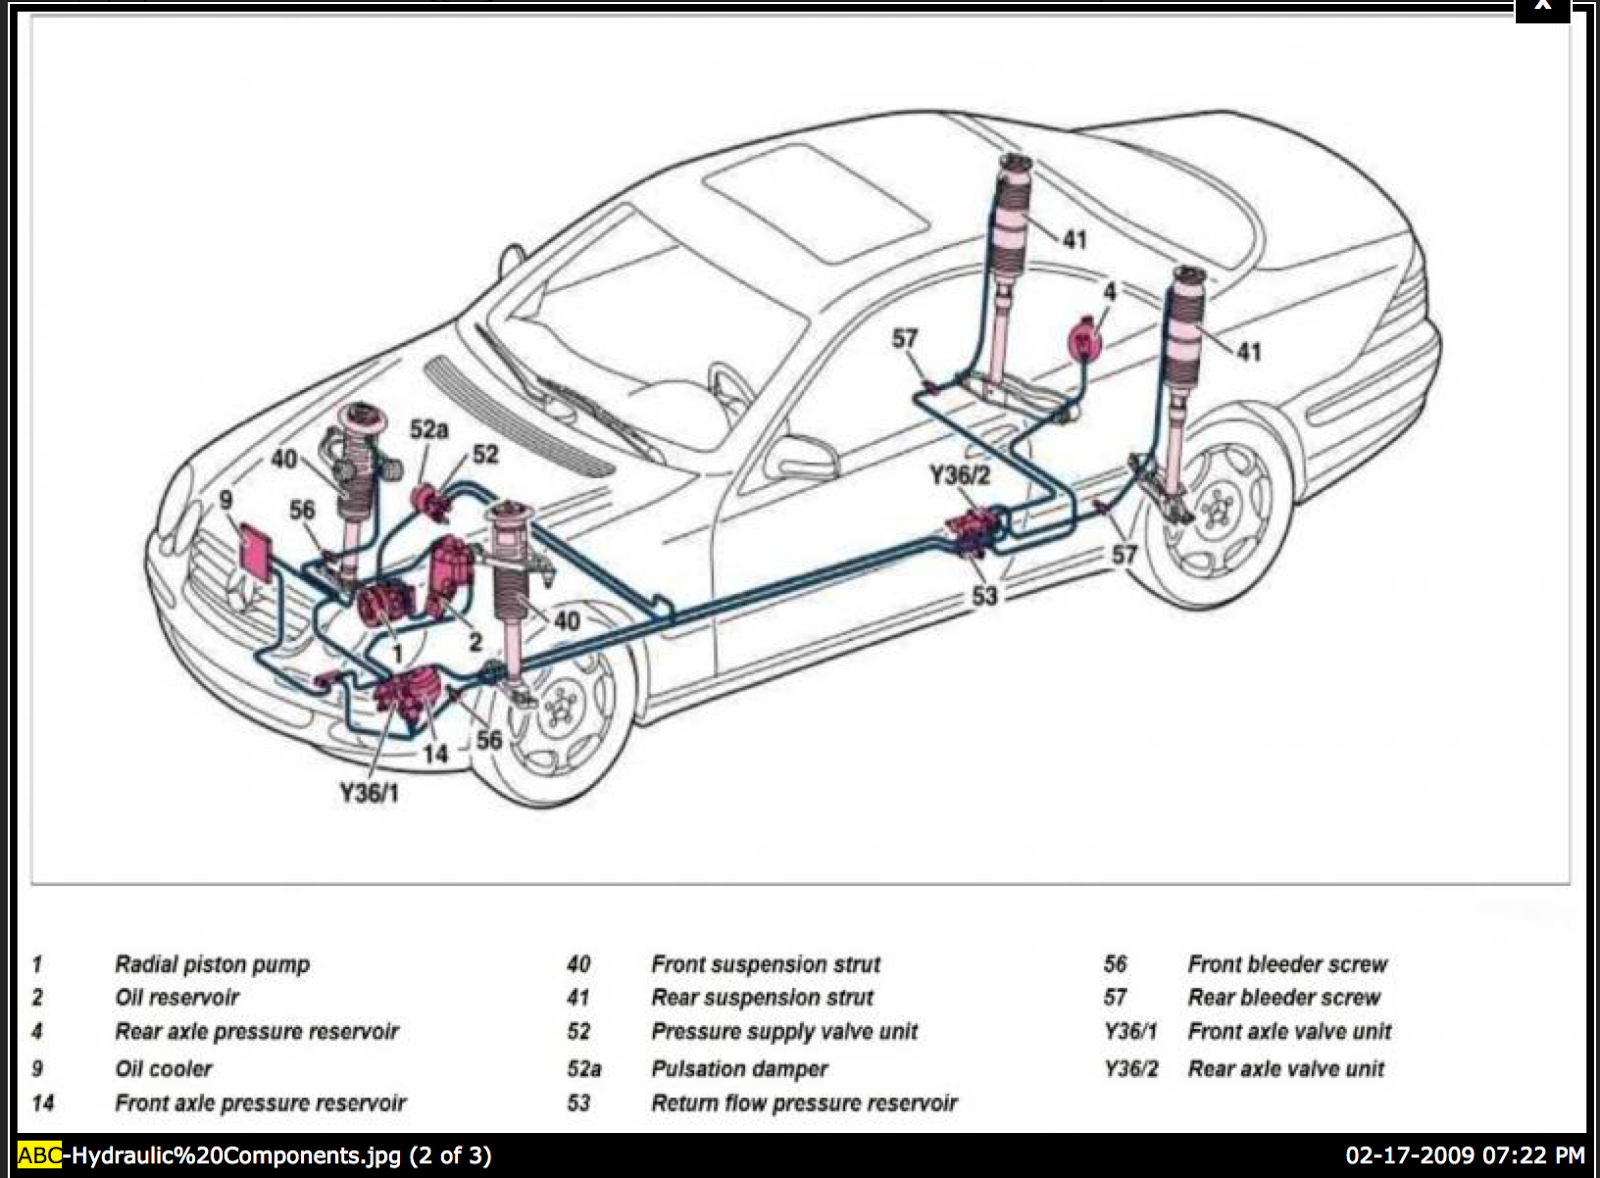 1994 Corvette Wiring Diagram Corvette Wiring Diagrams For Diy With Regard To 1970 Chevy Truck Parts Diagram furthermore Discussion T19578 ds515442 further Mercedes Benz W220 Fuse Box Layout further 521766 Front Control Arm Bushings also 37 ELEC Replacing Instrument Cluster Light Bulbs. on 2006 mercedes s500 fuse diagram